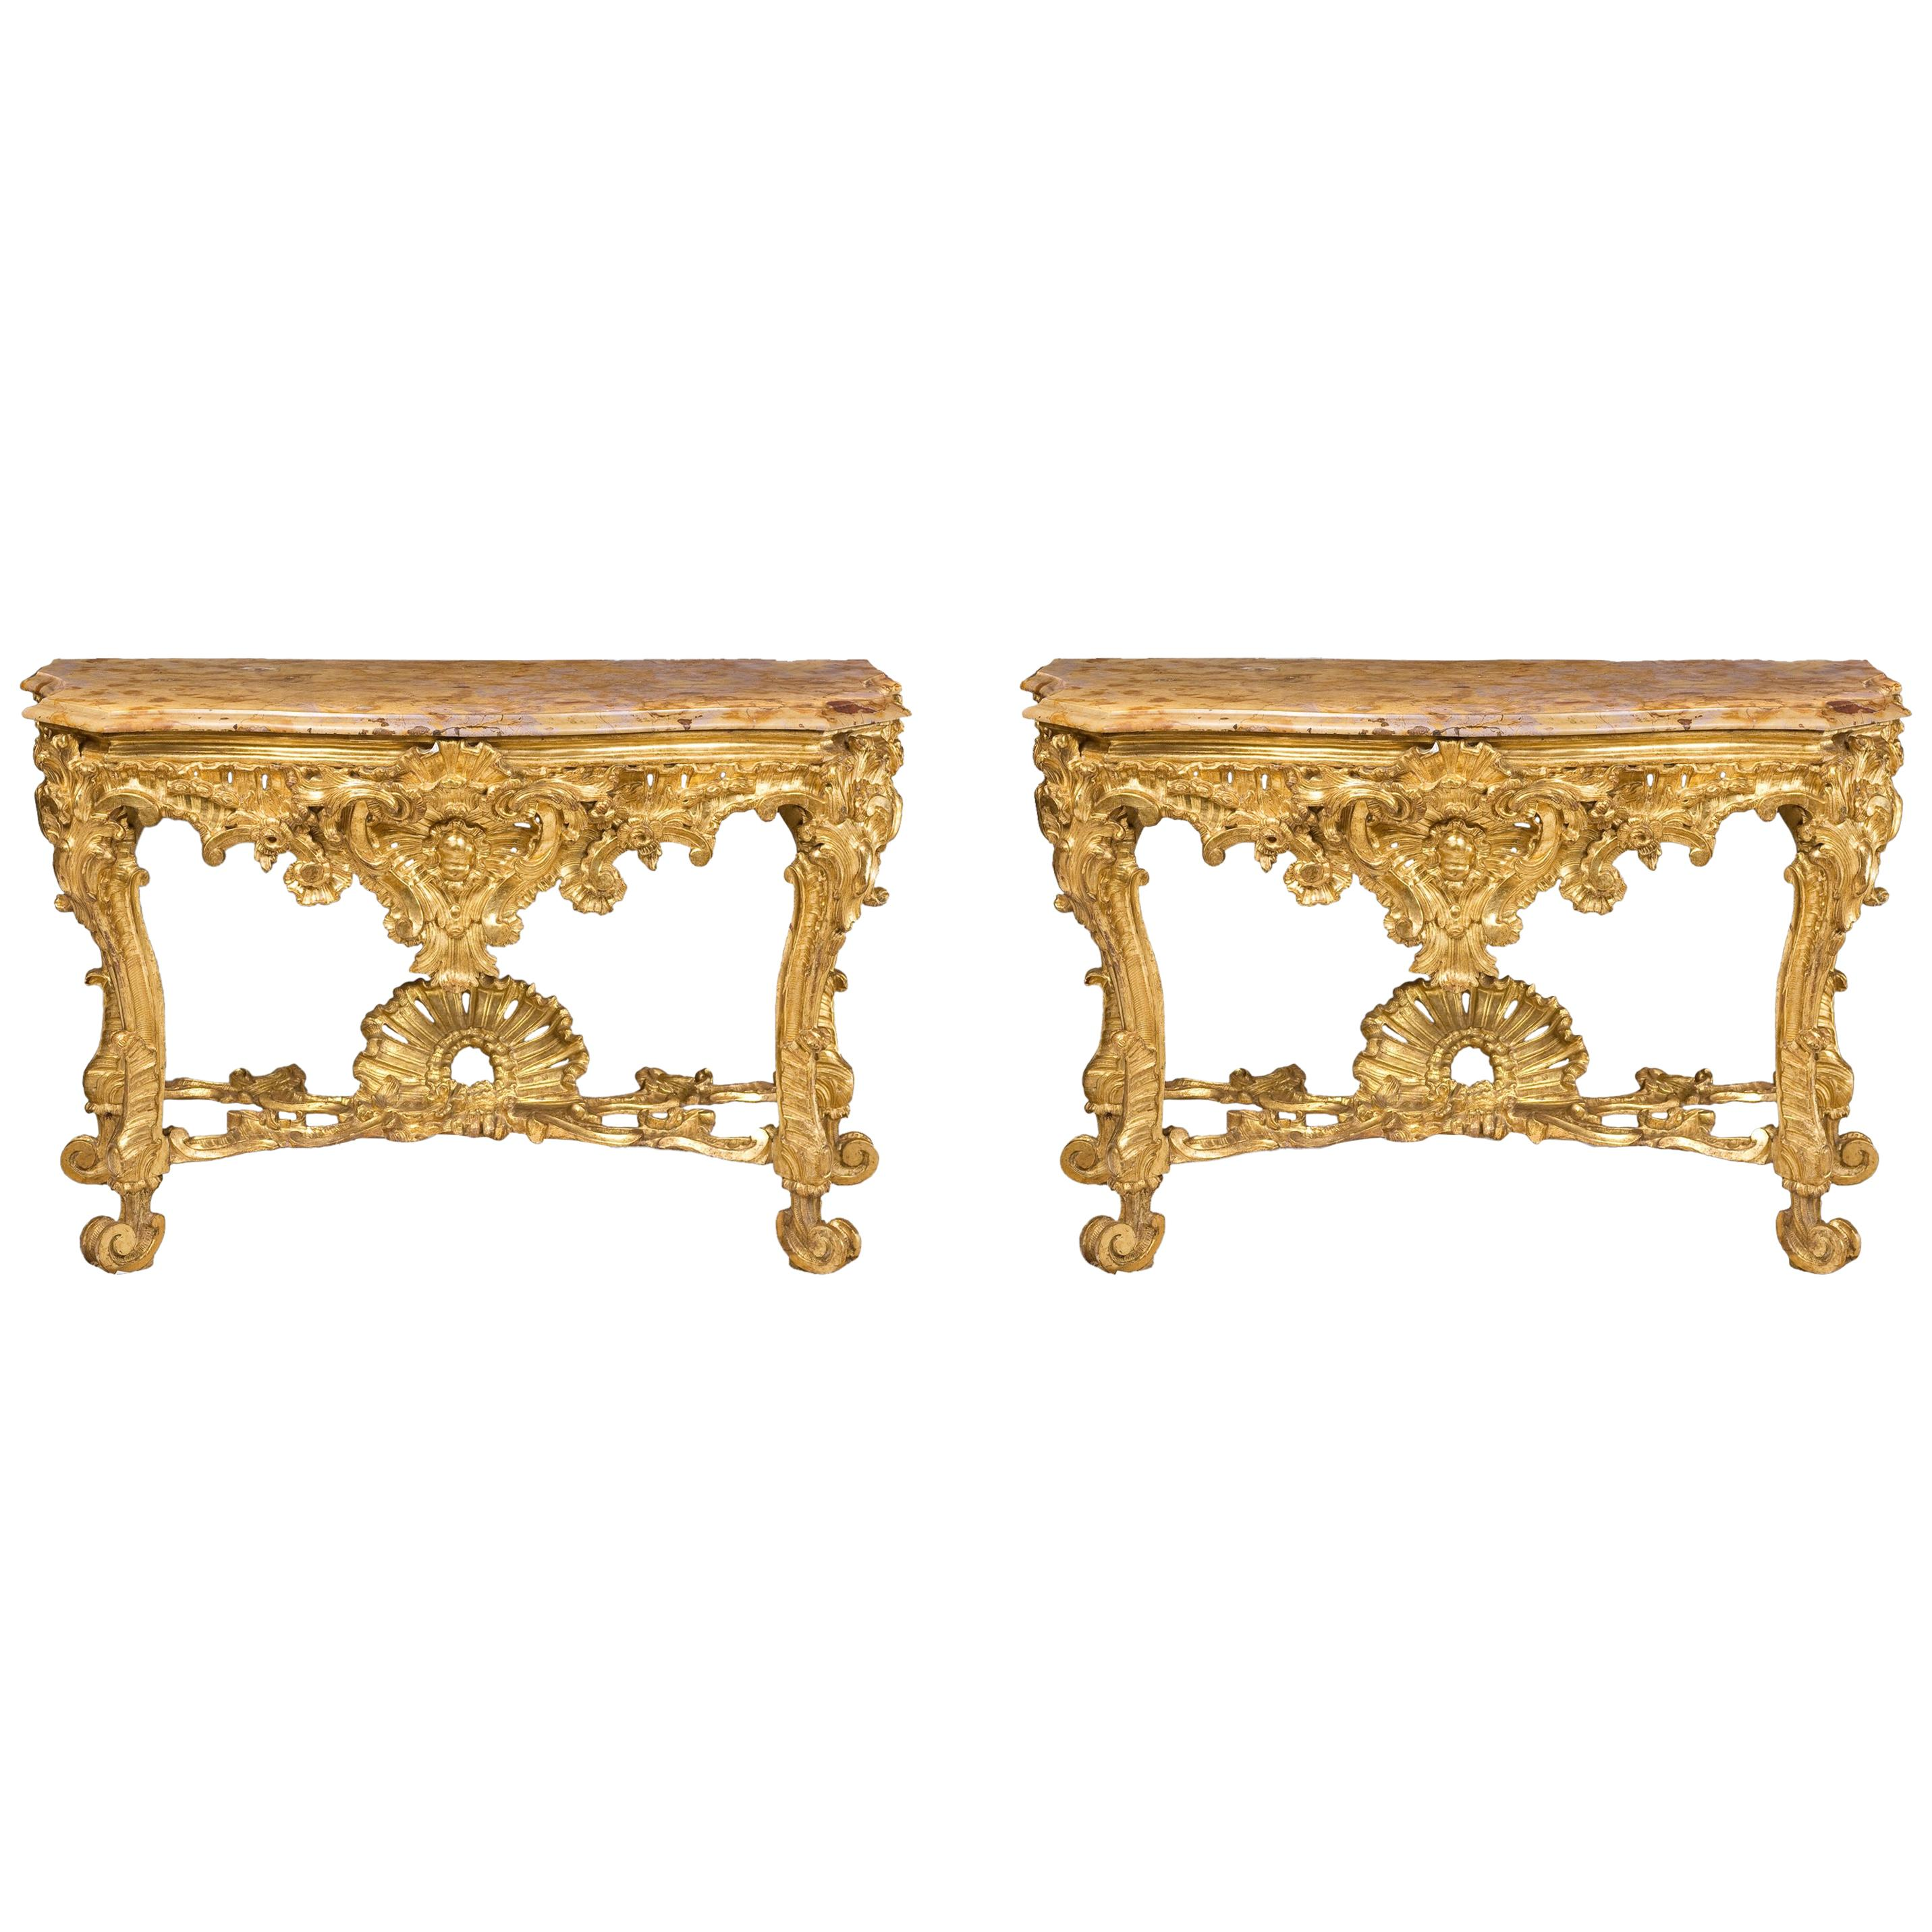 Pair of Roman Consoles, 18th Century